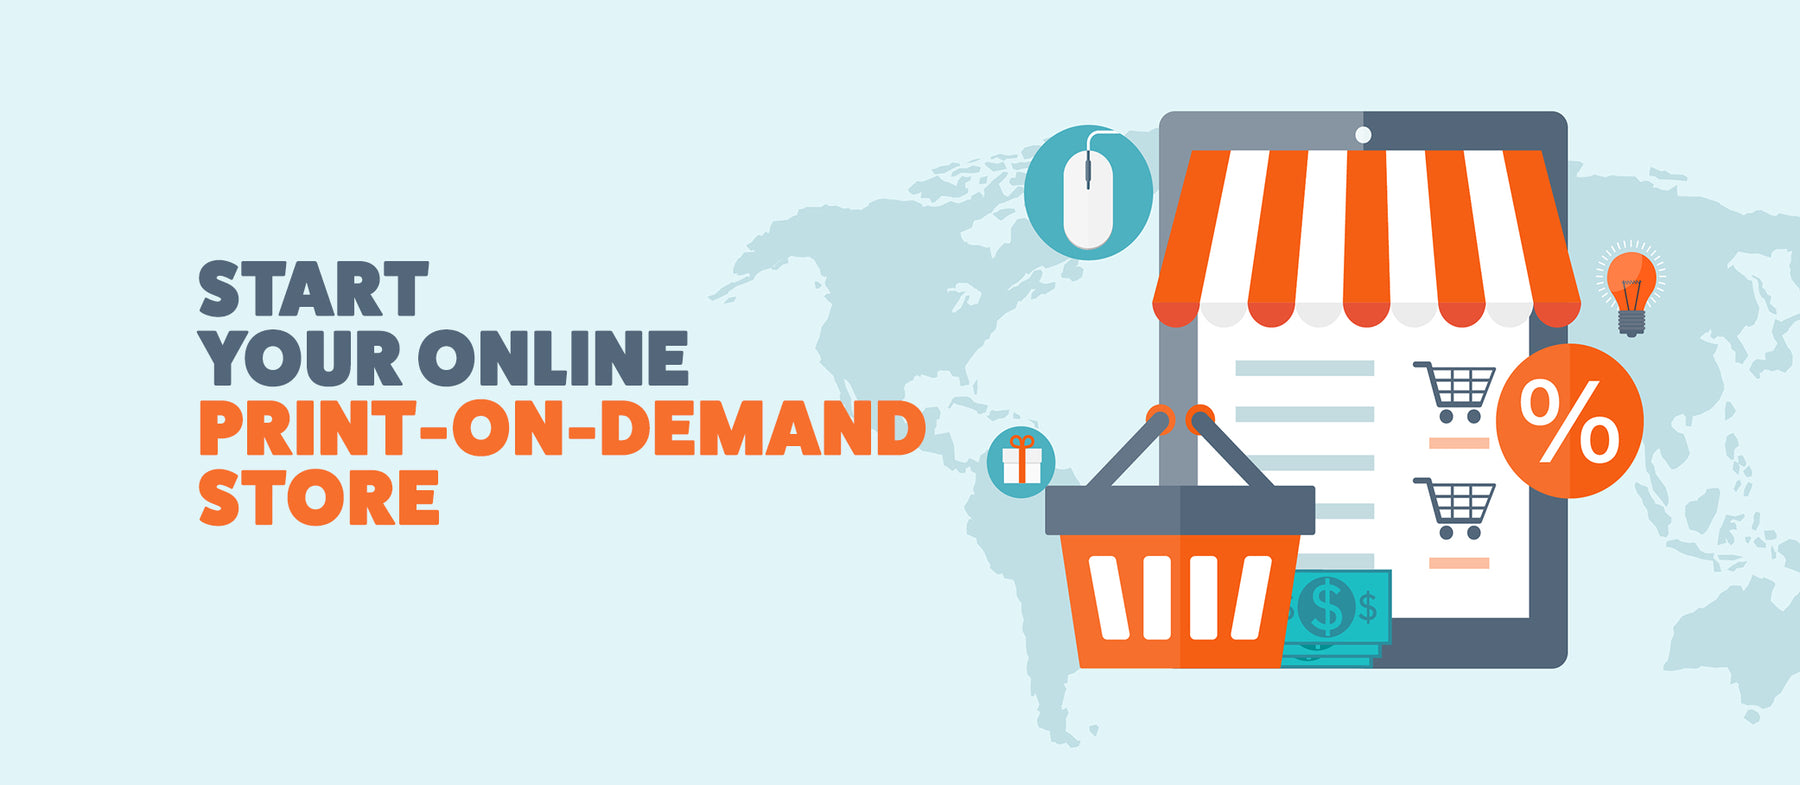 3 Websites You Need For Starting Your Online Print-On-Demand Store